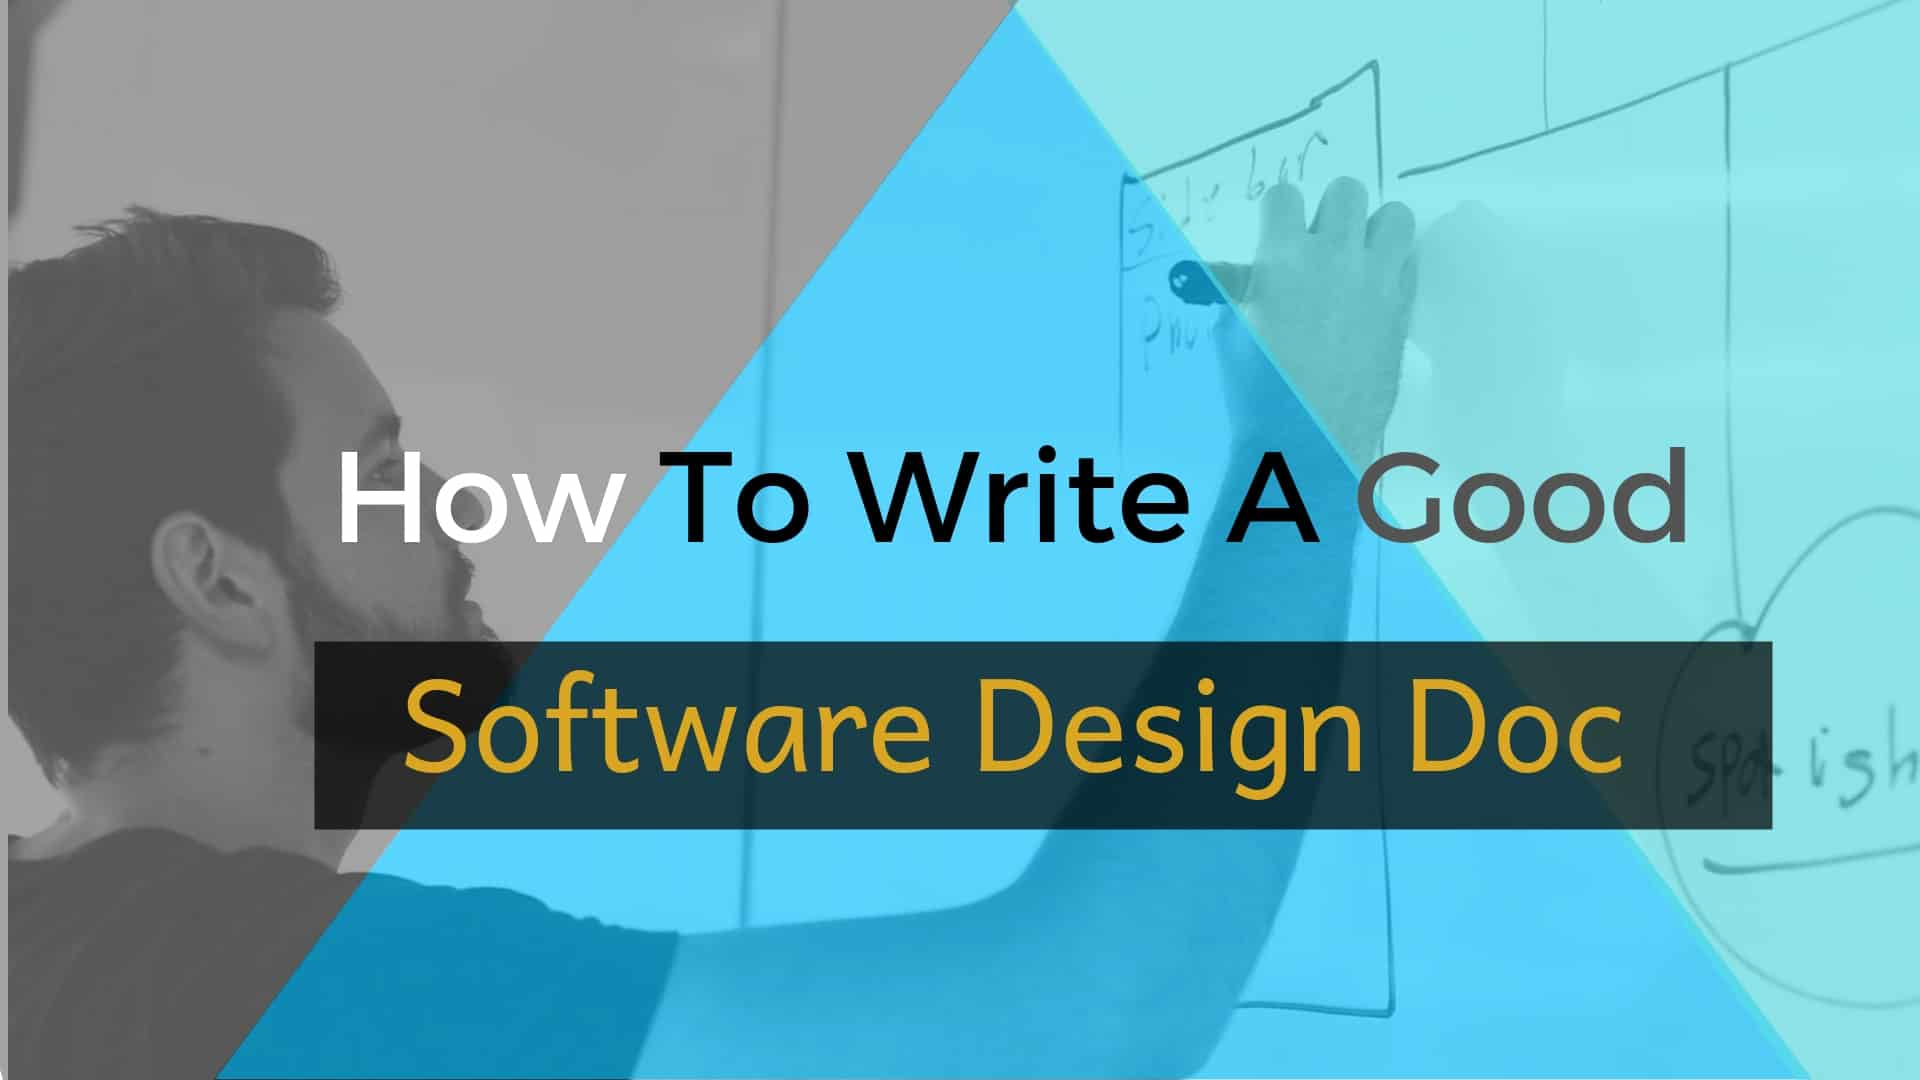 How To Write A Good Software Design Doc?